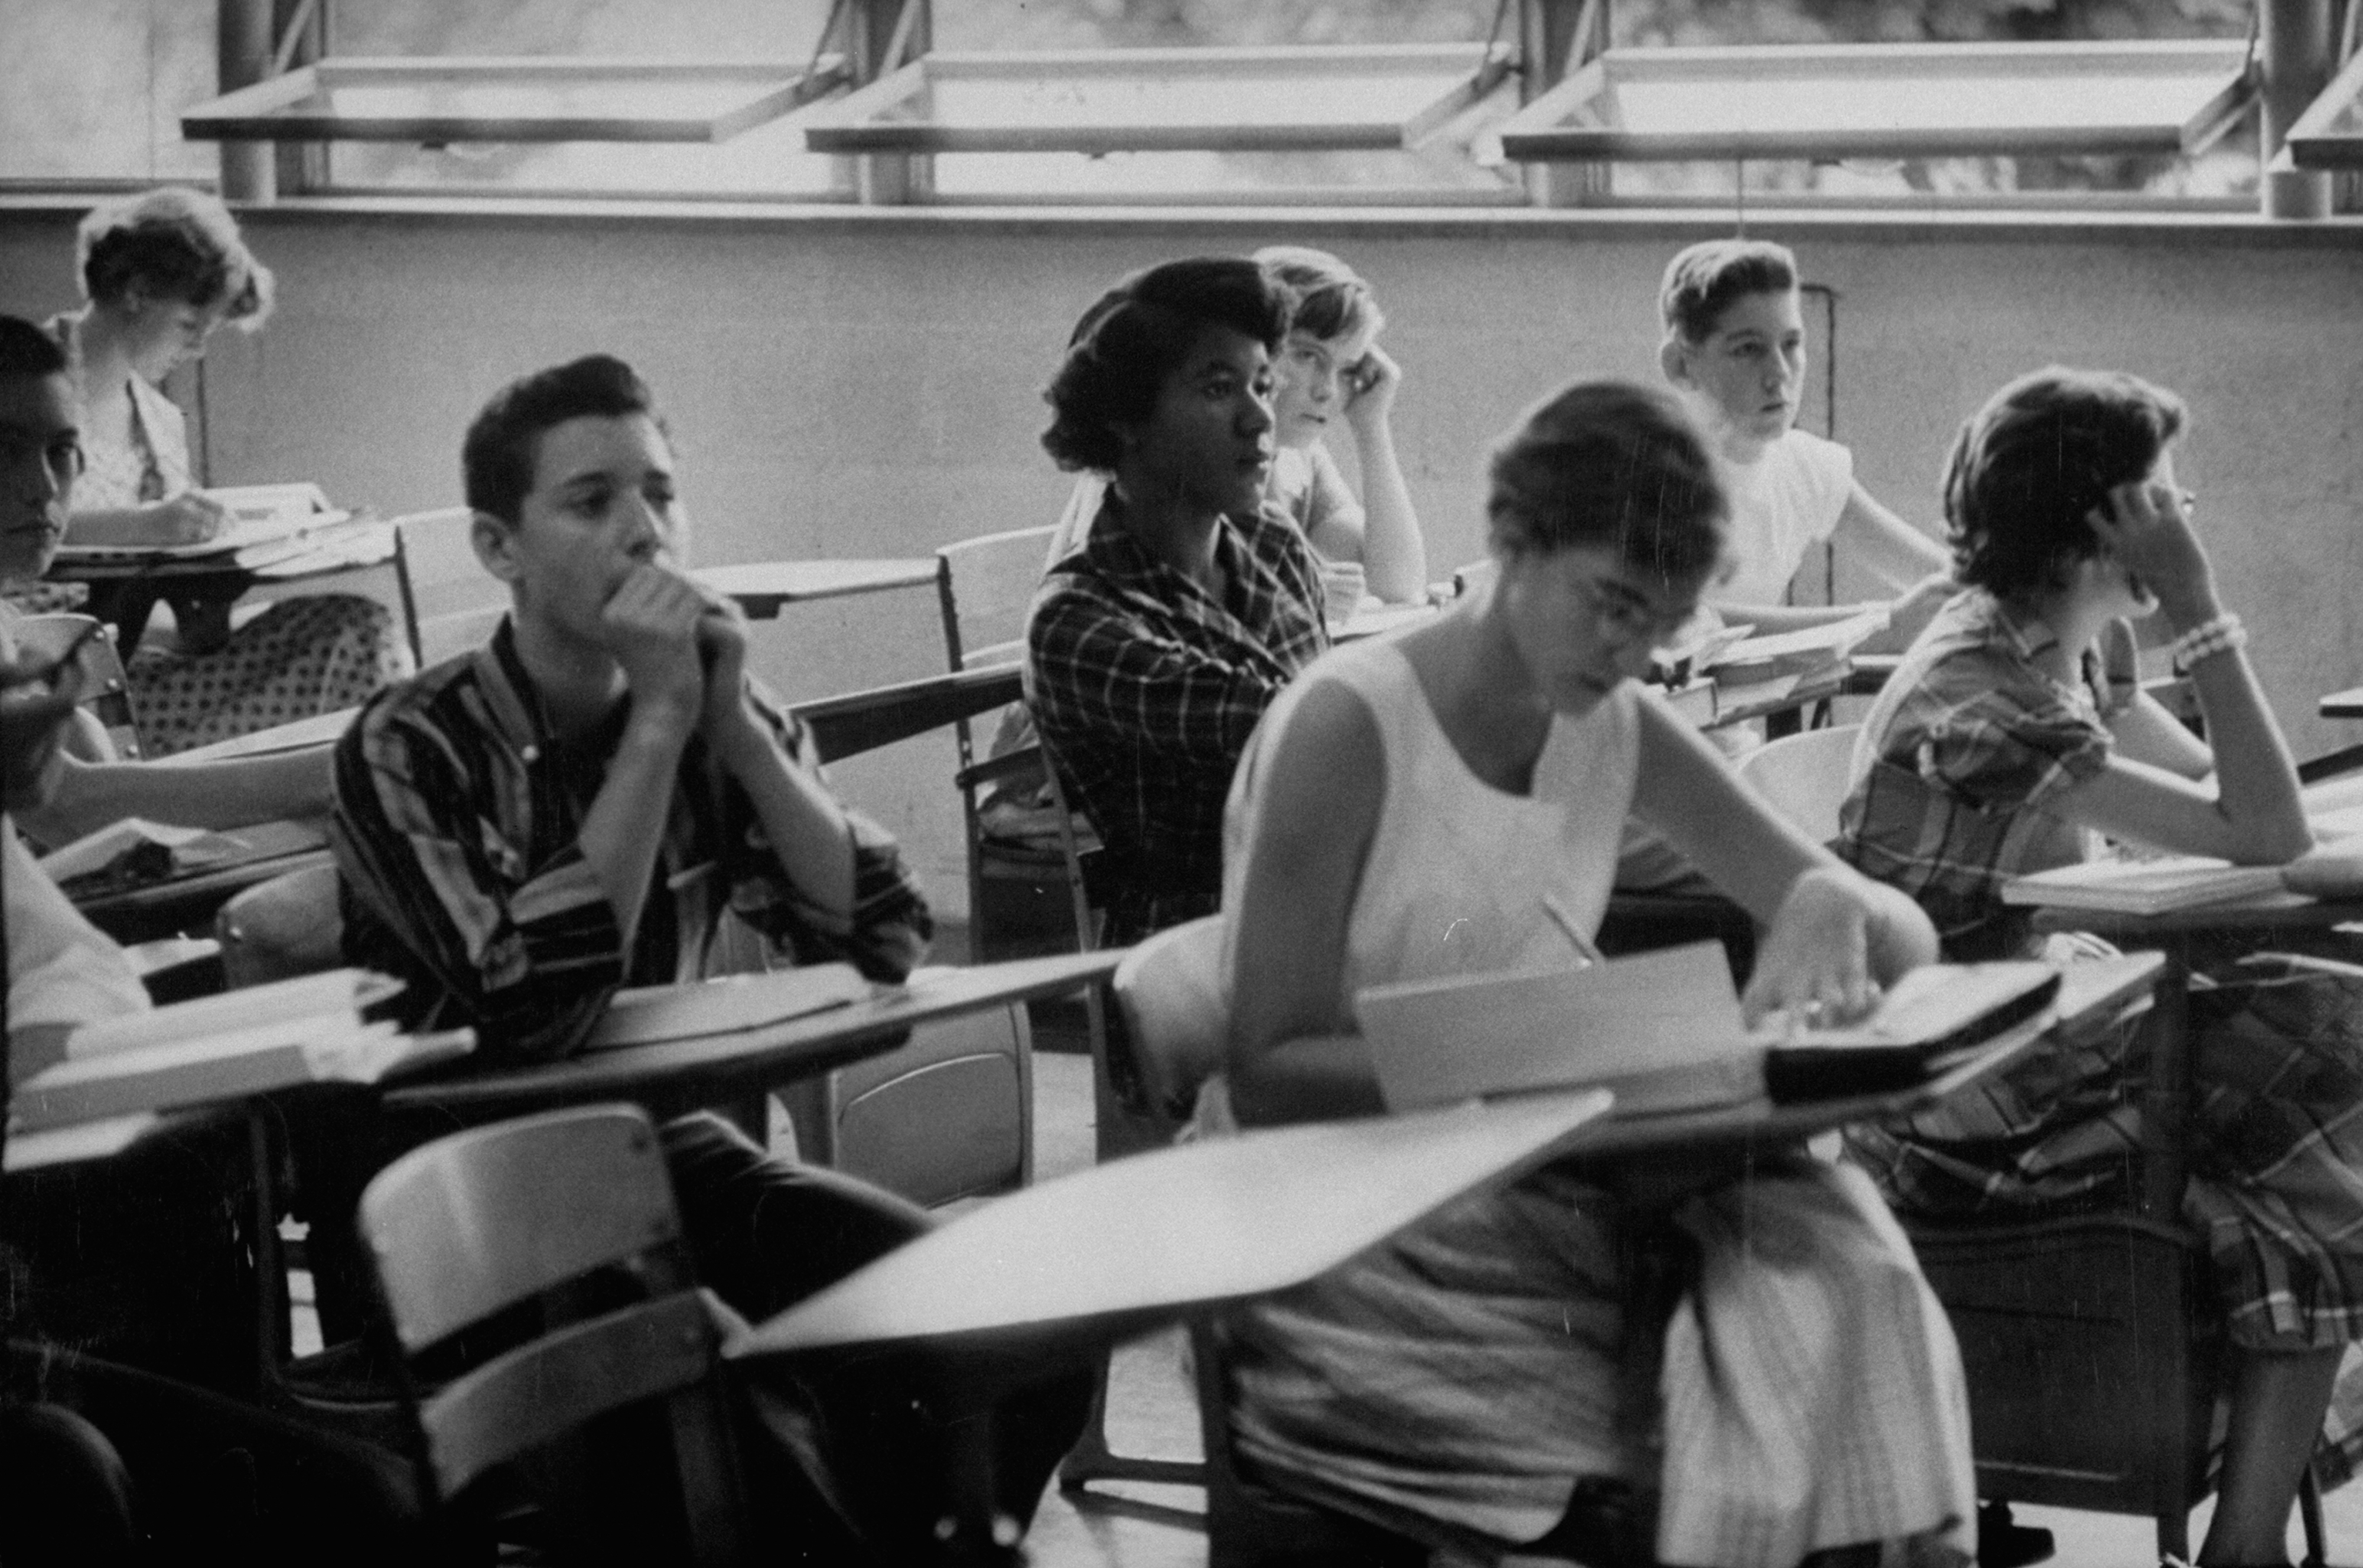 In this historic black and white photograph, one young Black woman sits in the middle of a high school class alongside several white students, after the school was desegregated in Tennessee.